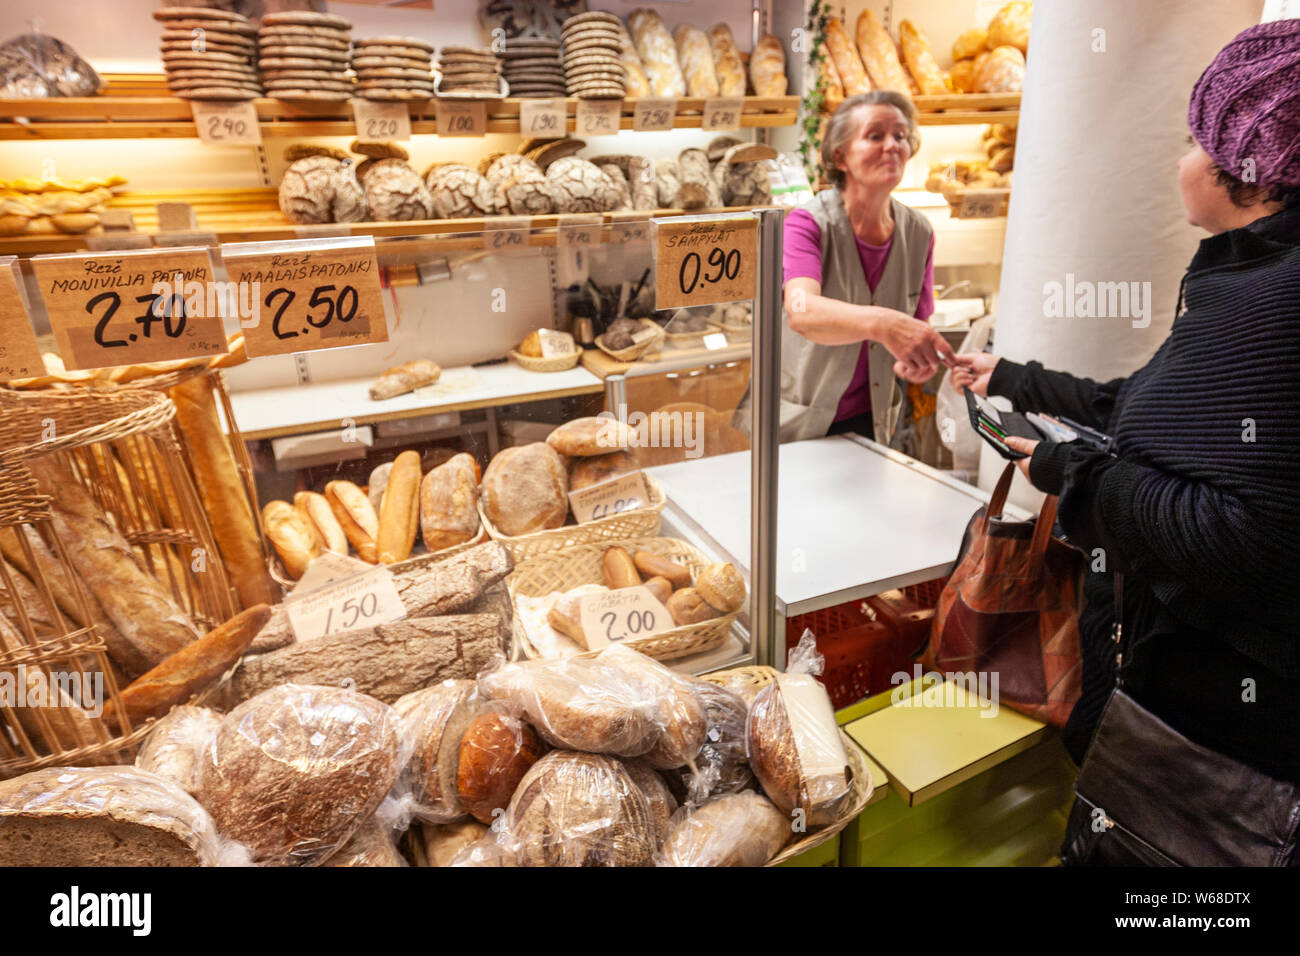 buying-bread-in-a-bakery-in-kauppahalli-